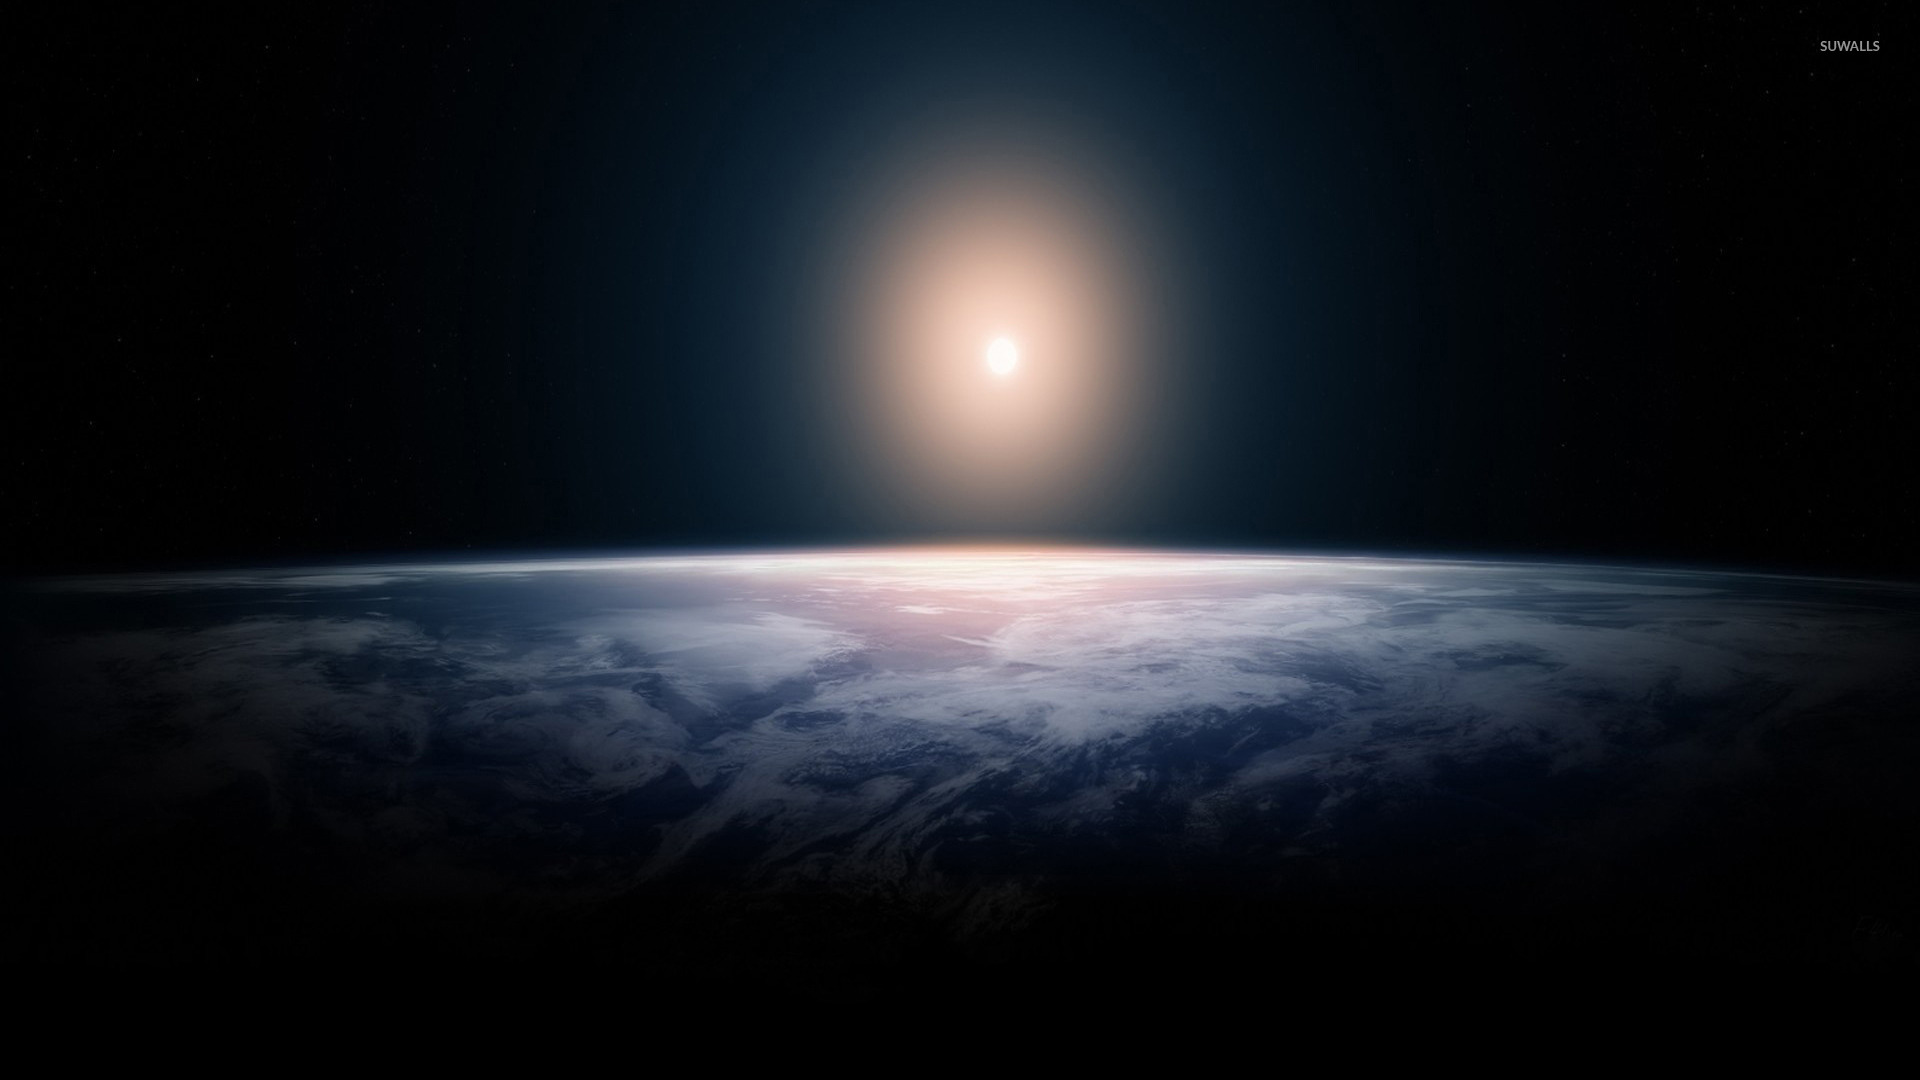 Iss Hd Wallpaper The Sun In The Horizon Wallpaper Space Wallpapers 45604